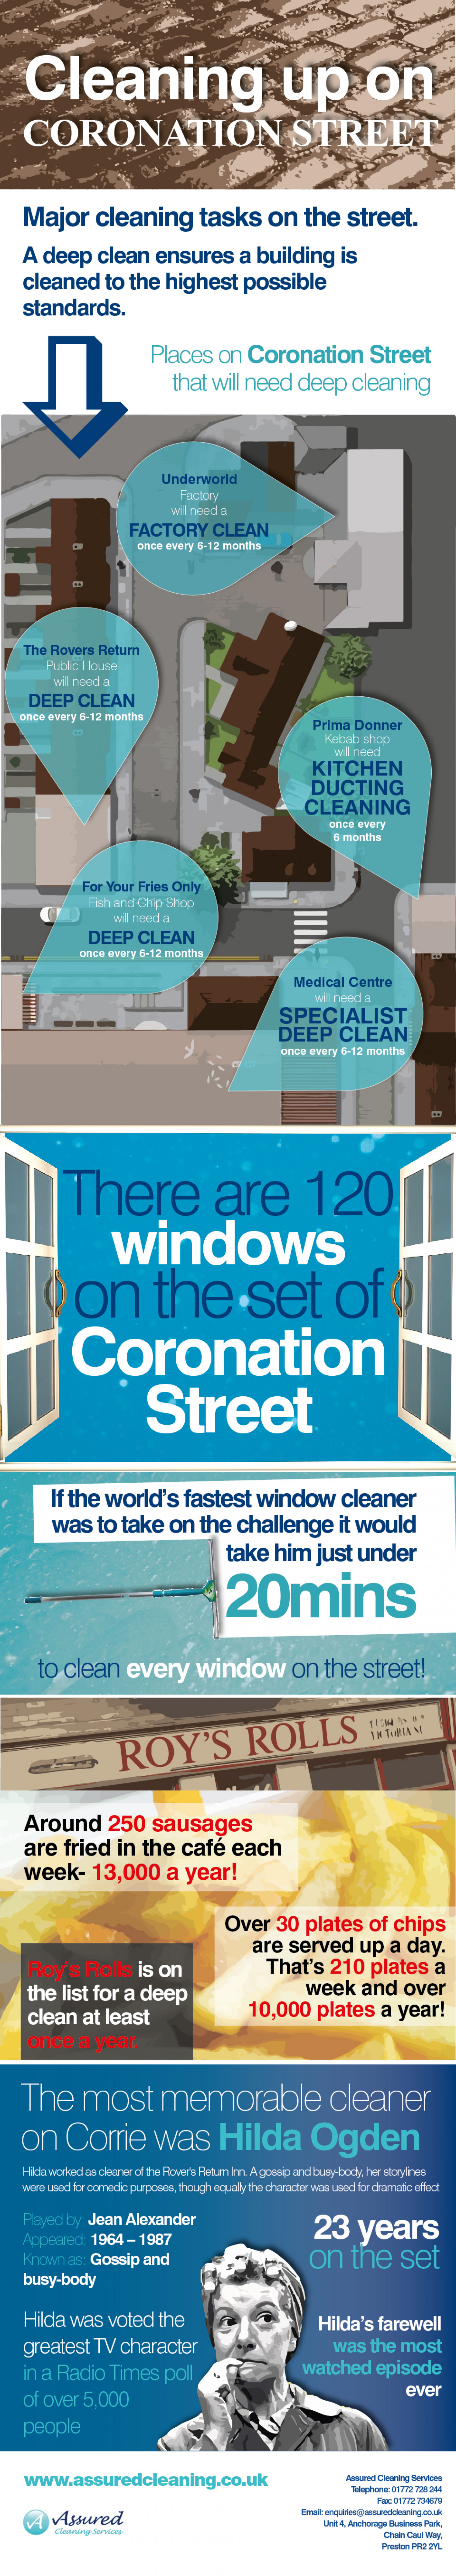 Cleaning up on Coronation Street Infographic